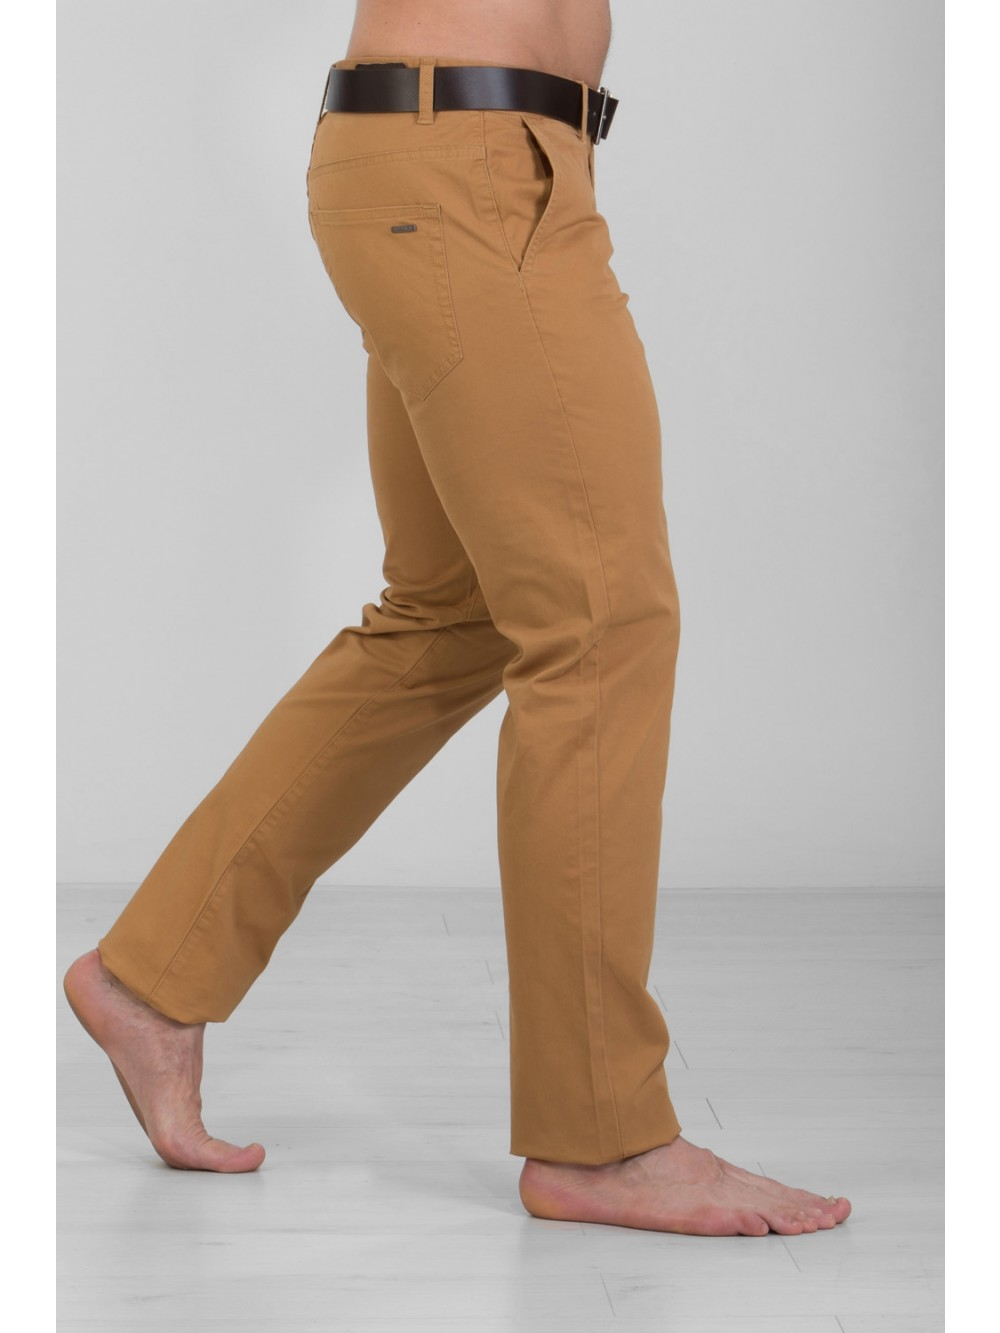 Mens Pants twill JSM248 l  - Camel